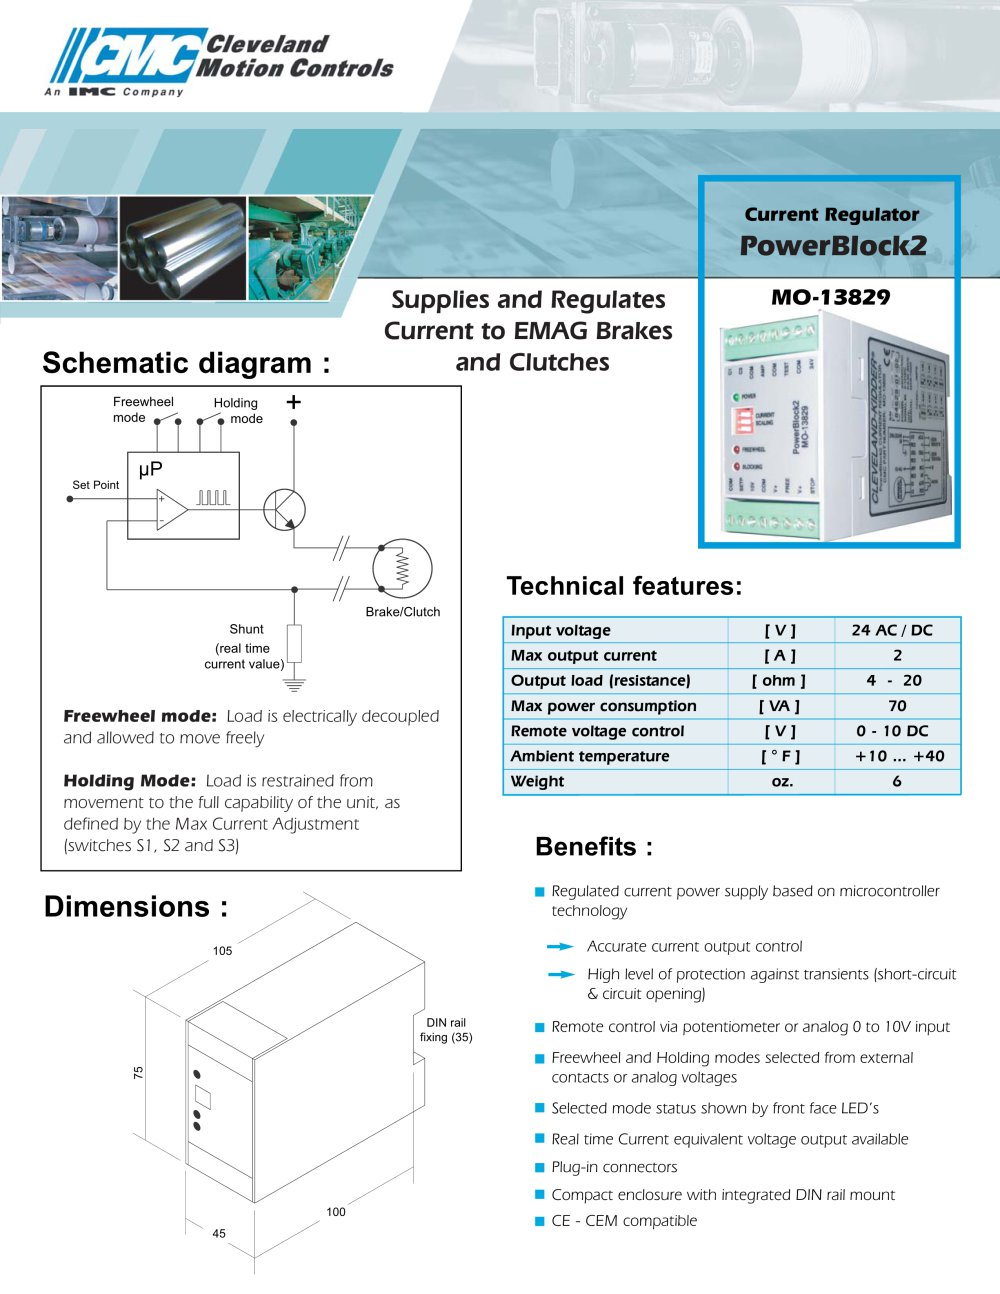 Emag Power Block Pb2 Cleveland Motion Controls Pdf Catalogue. Emag Power Block Pb2 1 2 Pages. Wiring. Pacemaster Dc Drive Wiring Diagram At Scoala.co